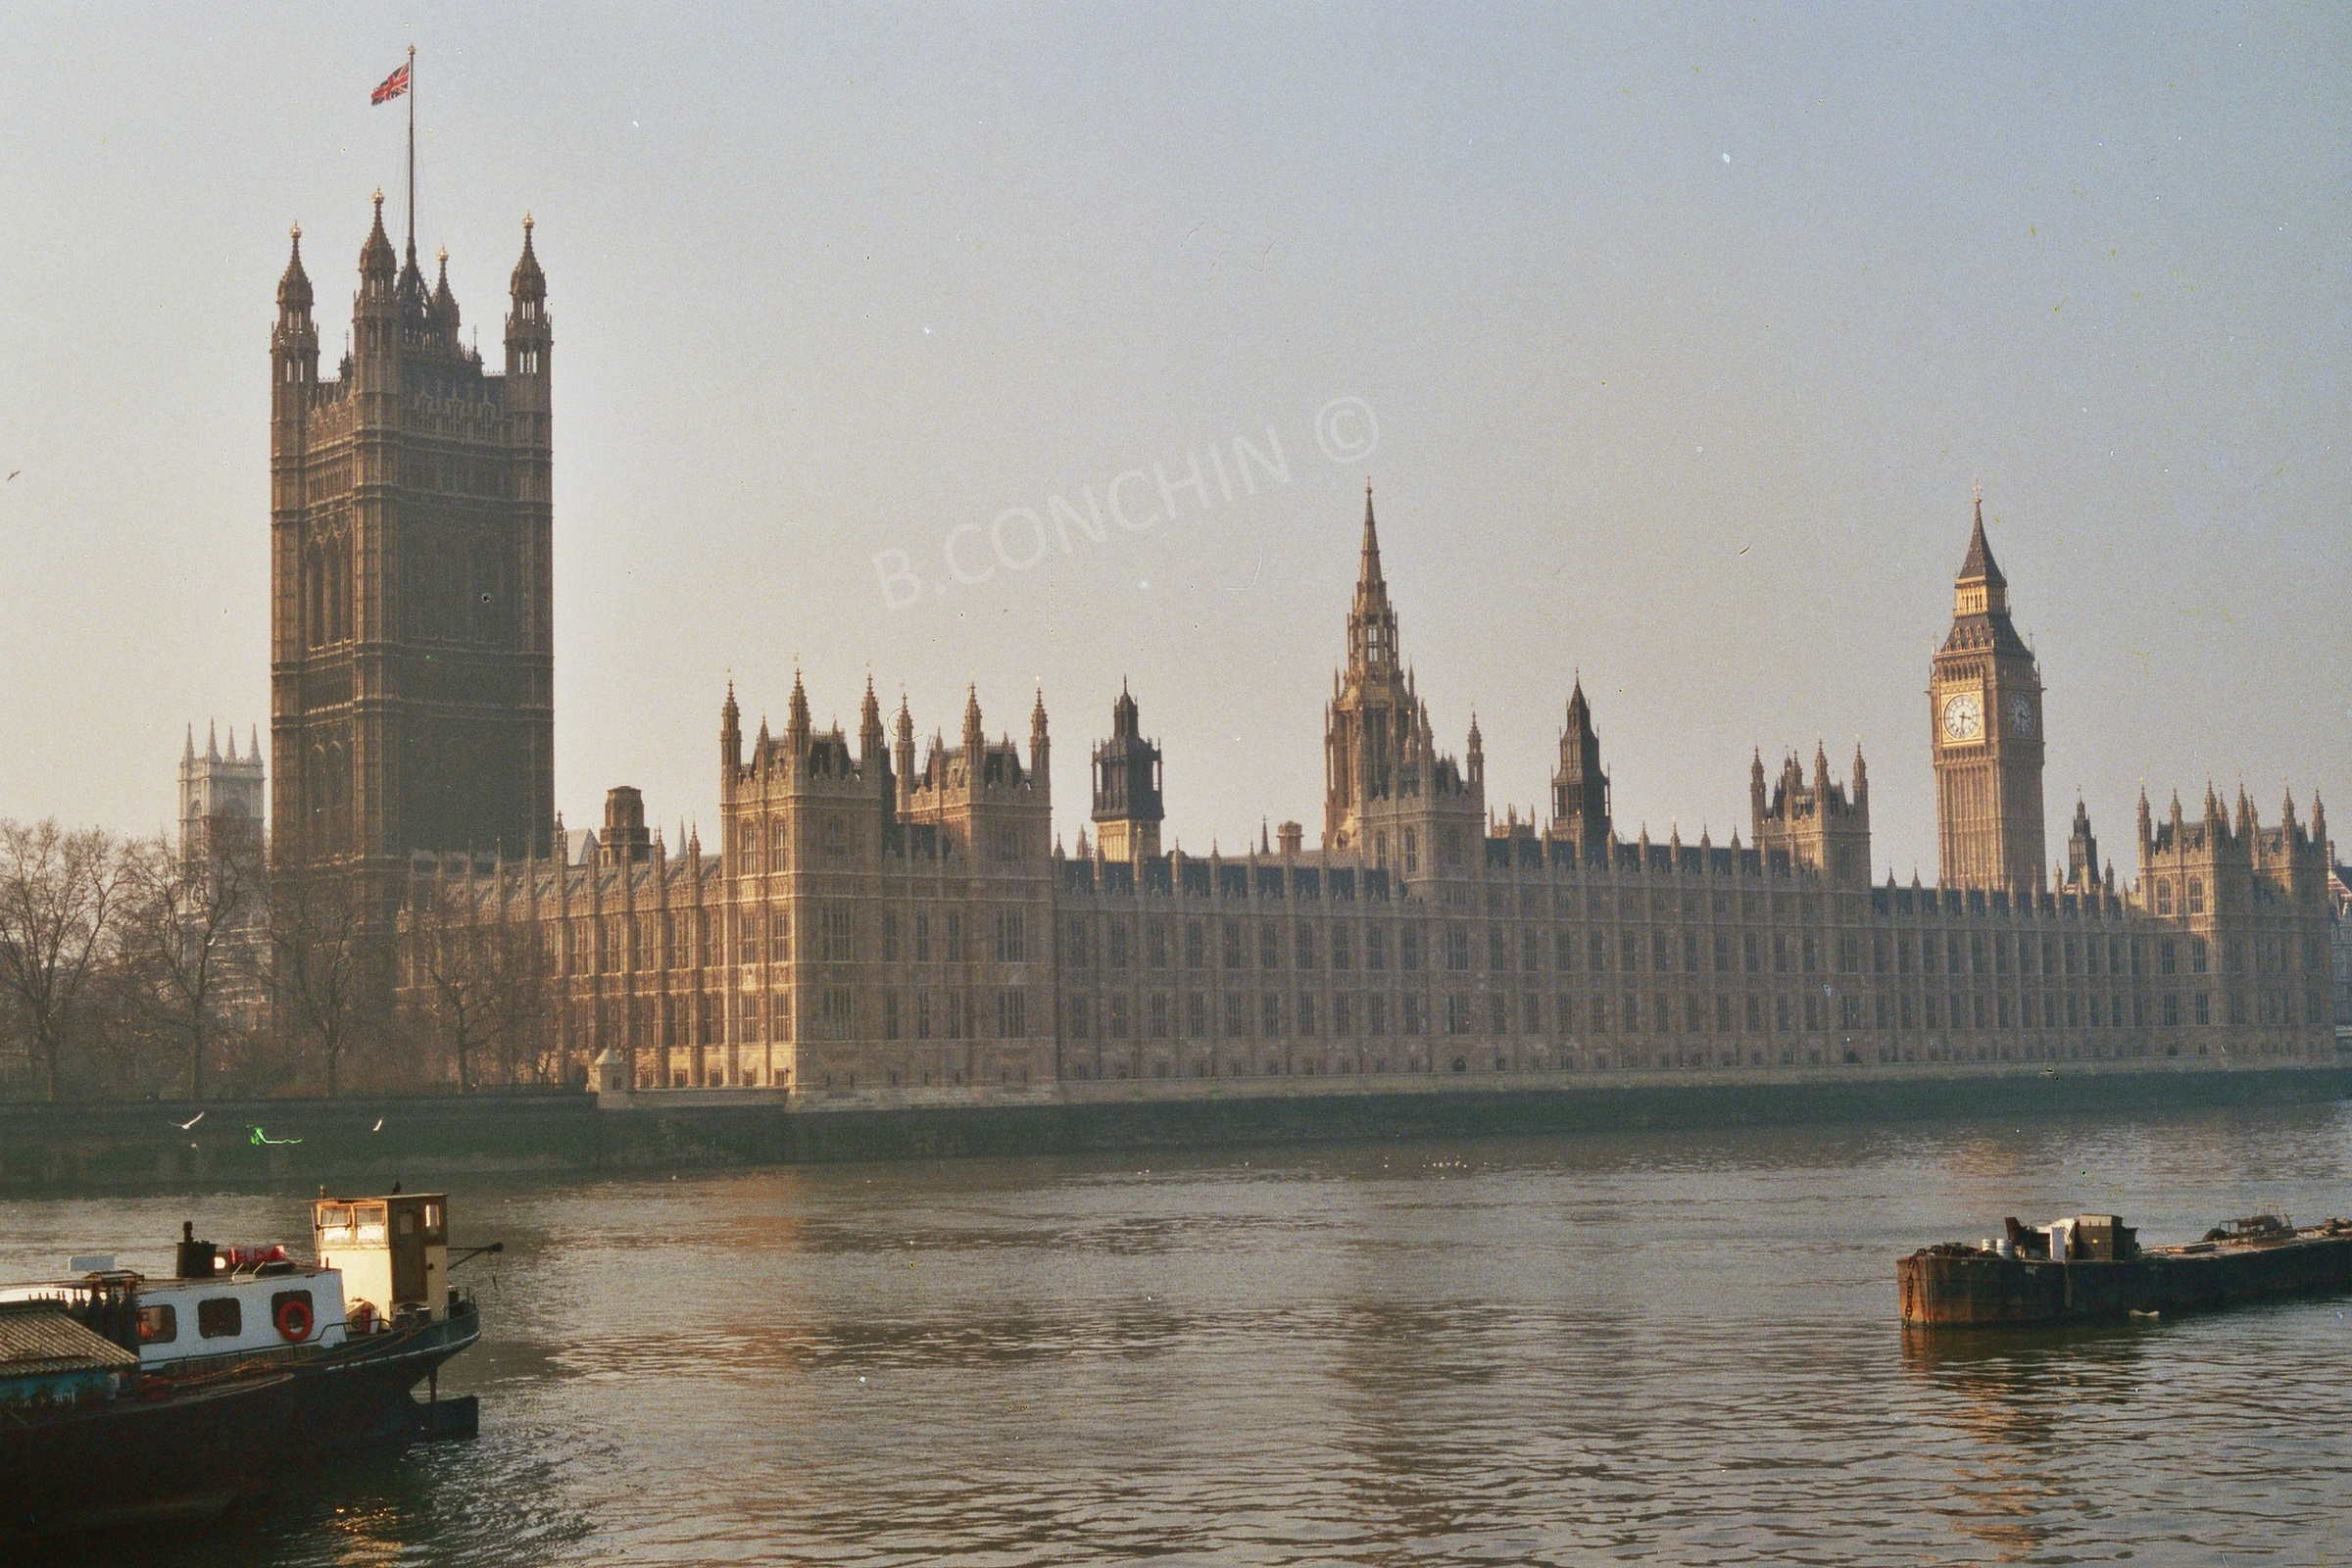 House of parlement